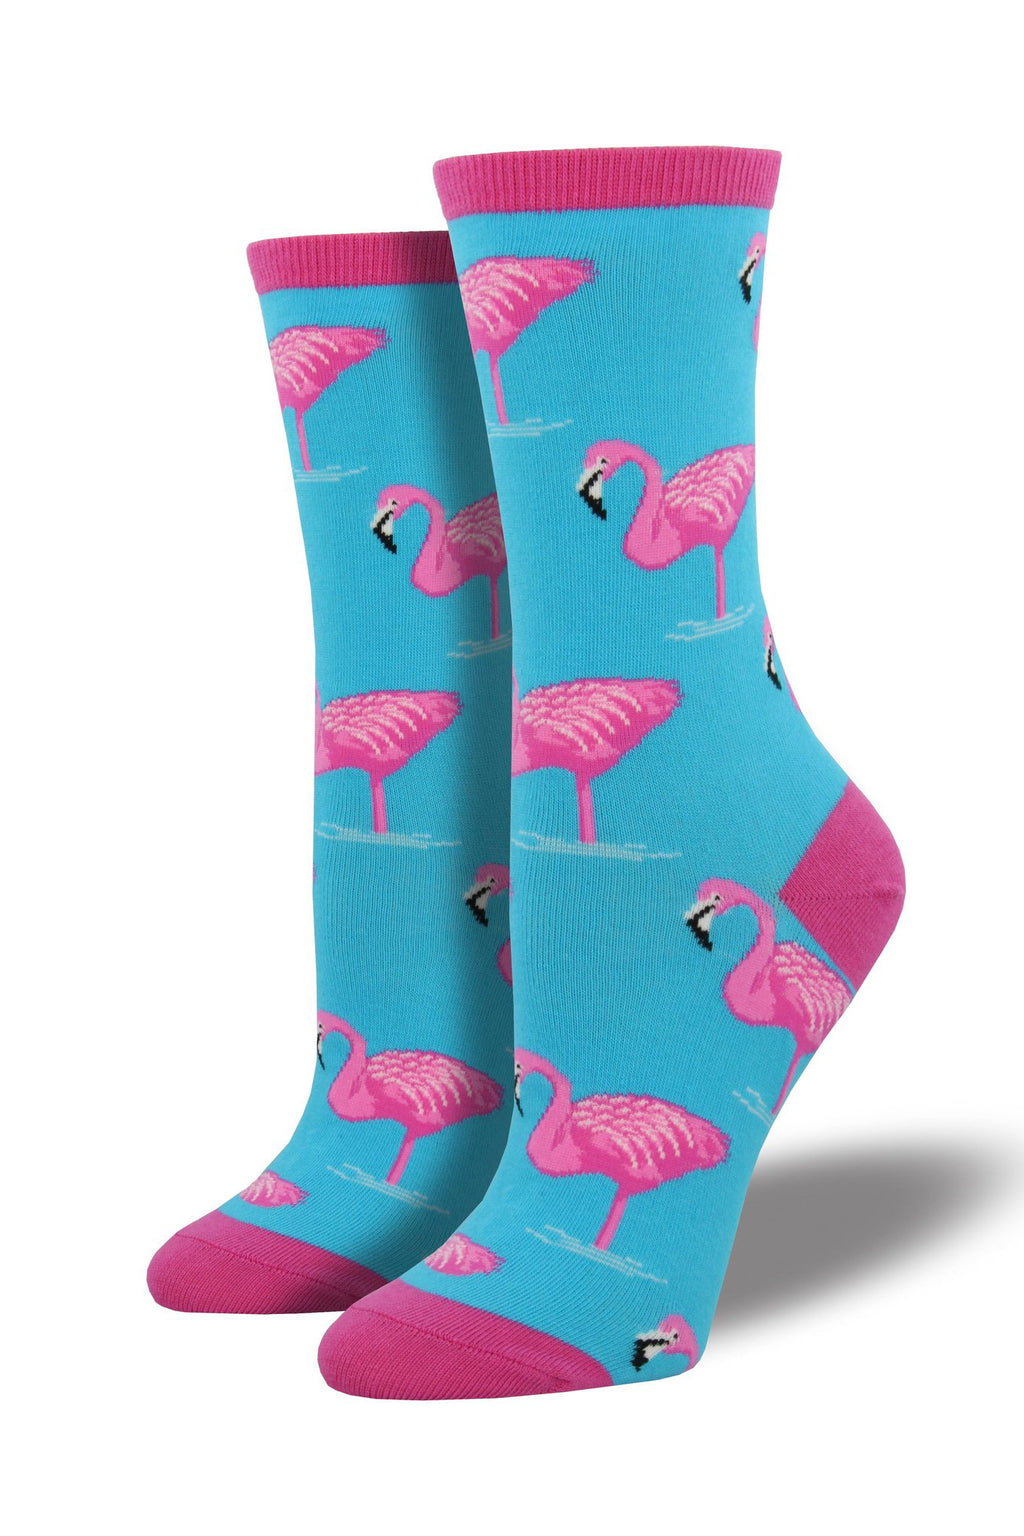 Flamingo Socks in Sky Blue